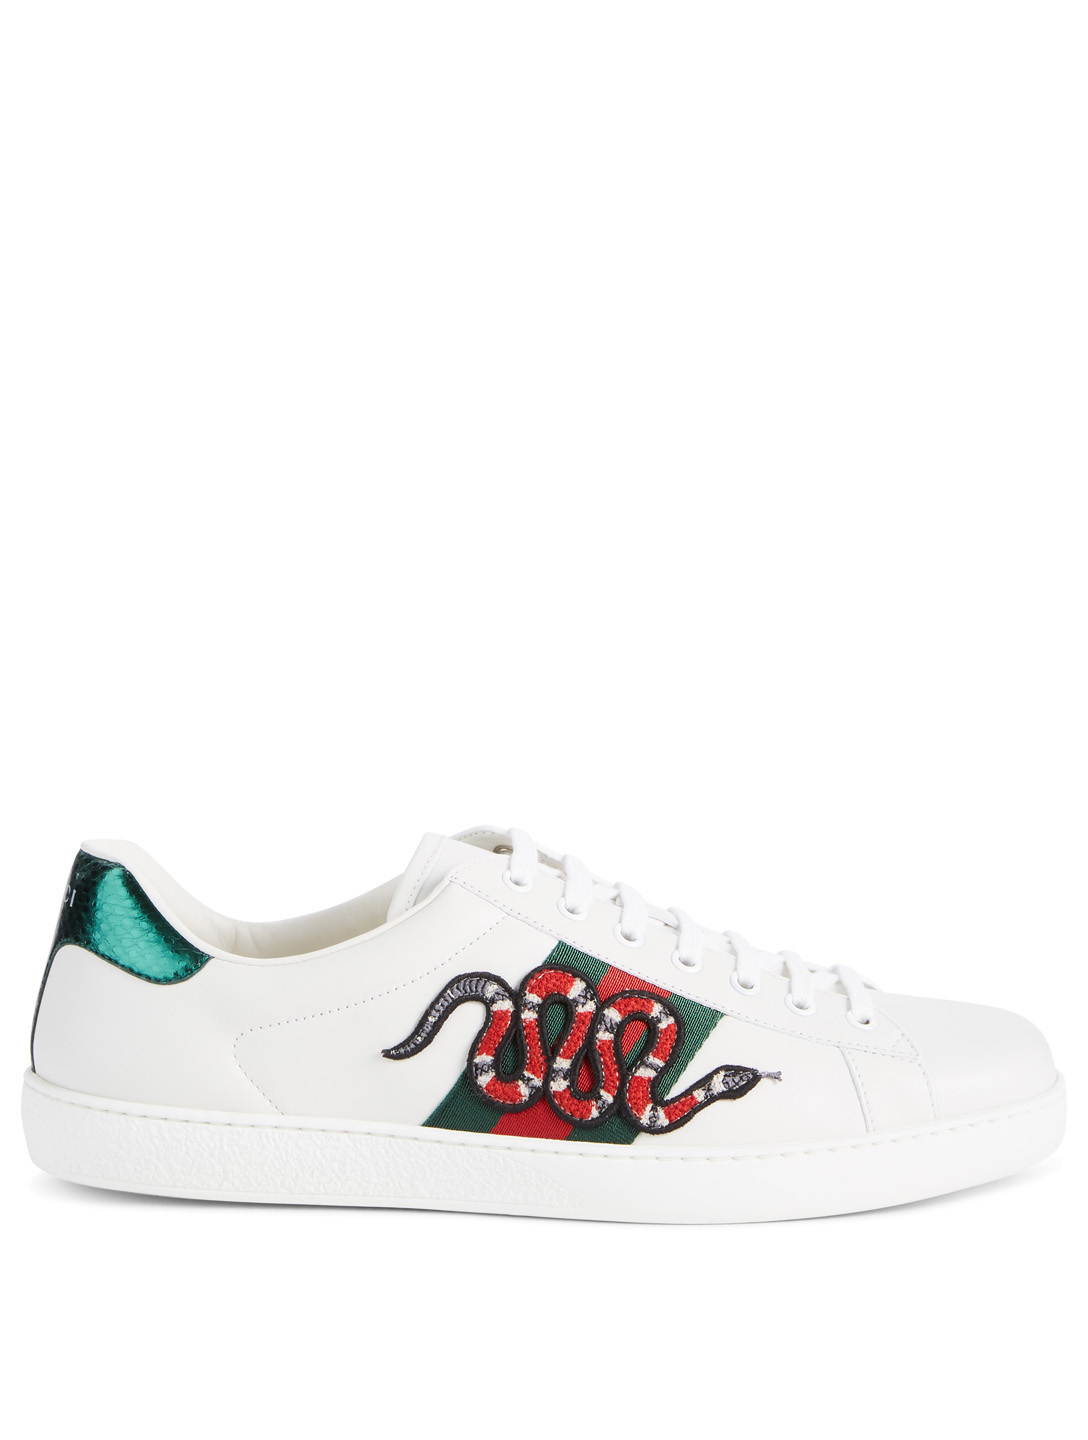 12ce6d860d9 GUCCI New Ace Leather Sneakers With Snake Embroidery